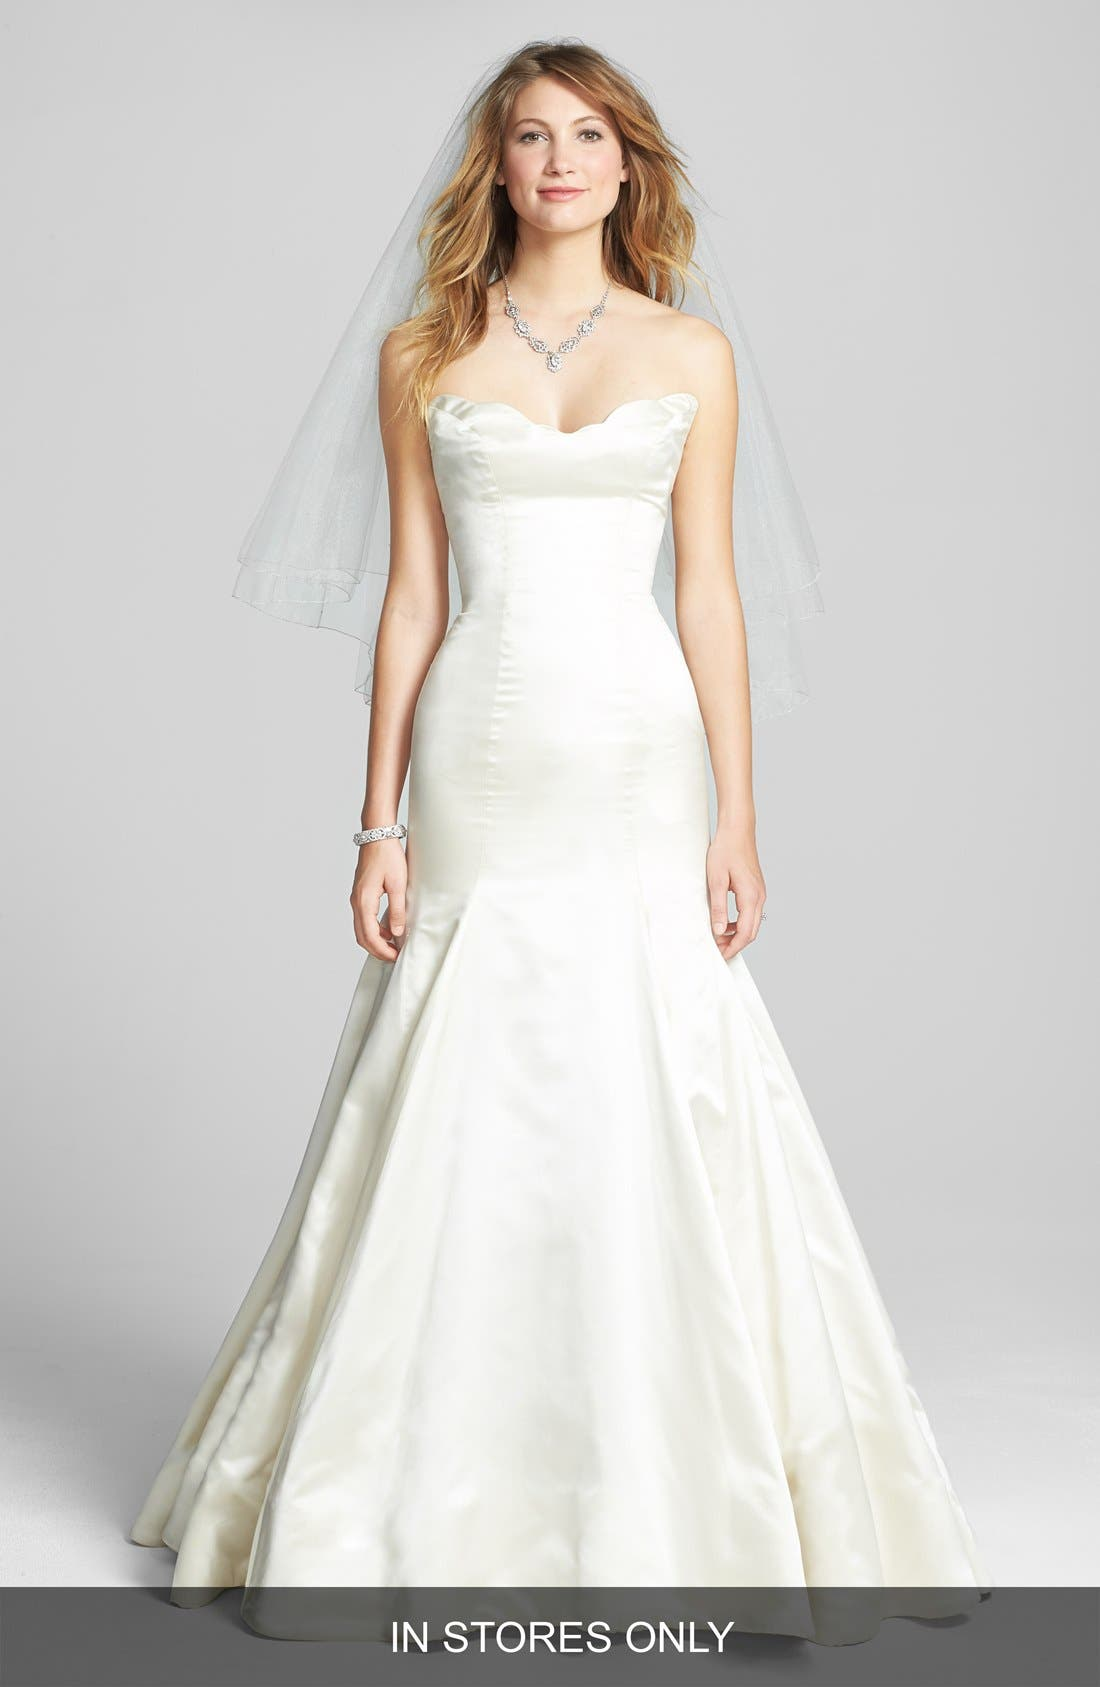 Main Image - Reem Acra 'Iris' Sculpted Neckline Strapless Satin Mermaid Gown (In Stores Only)